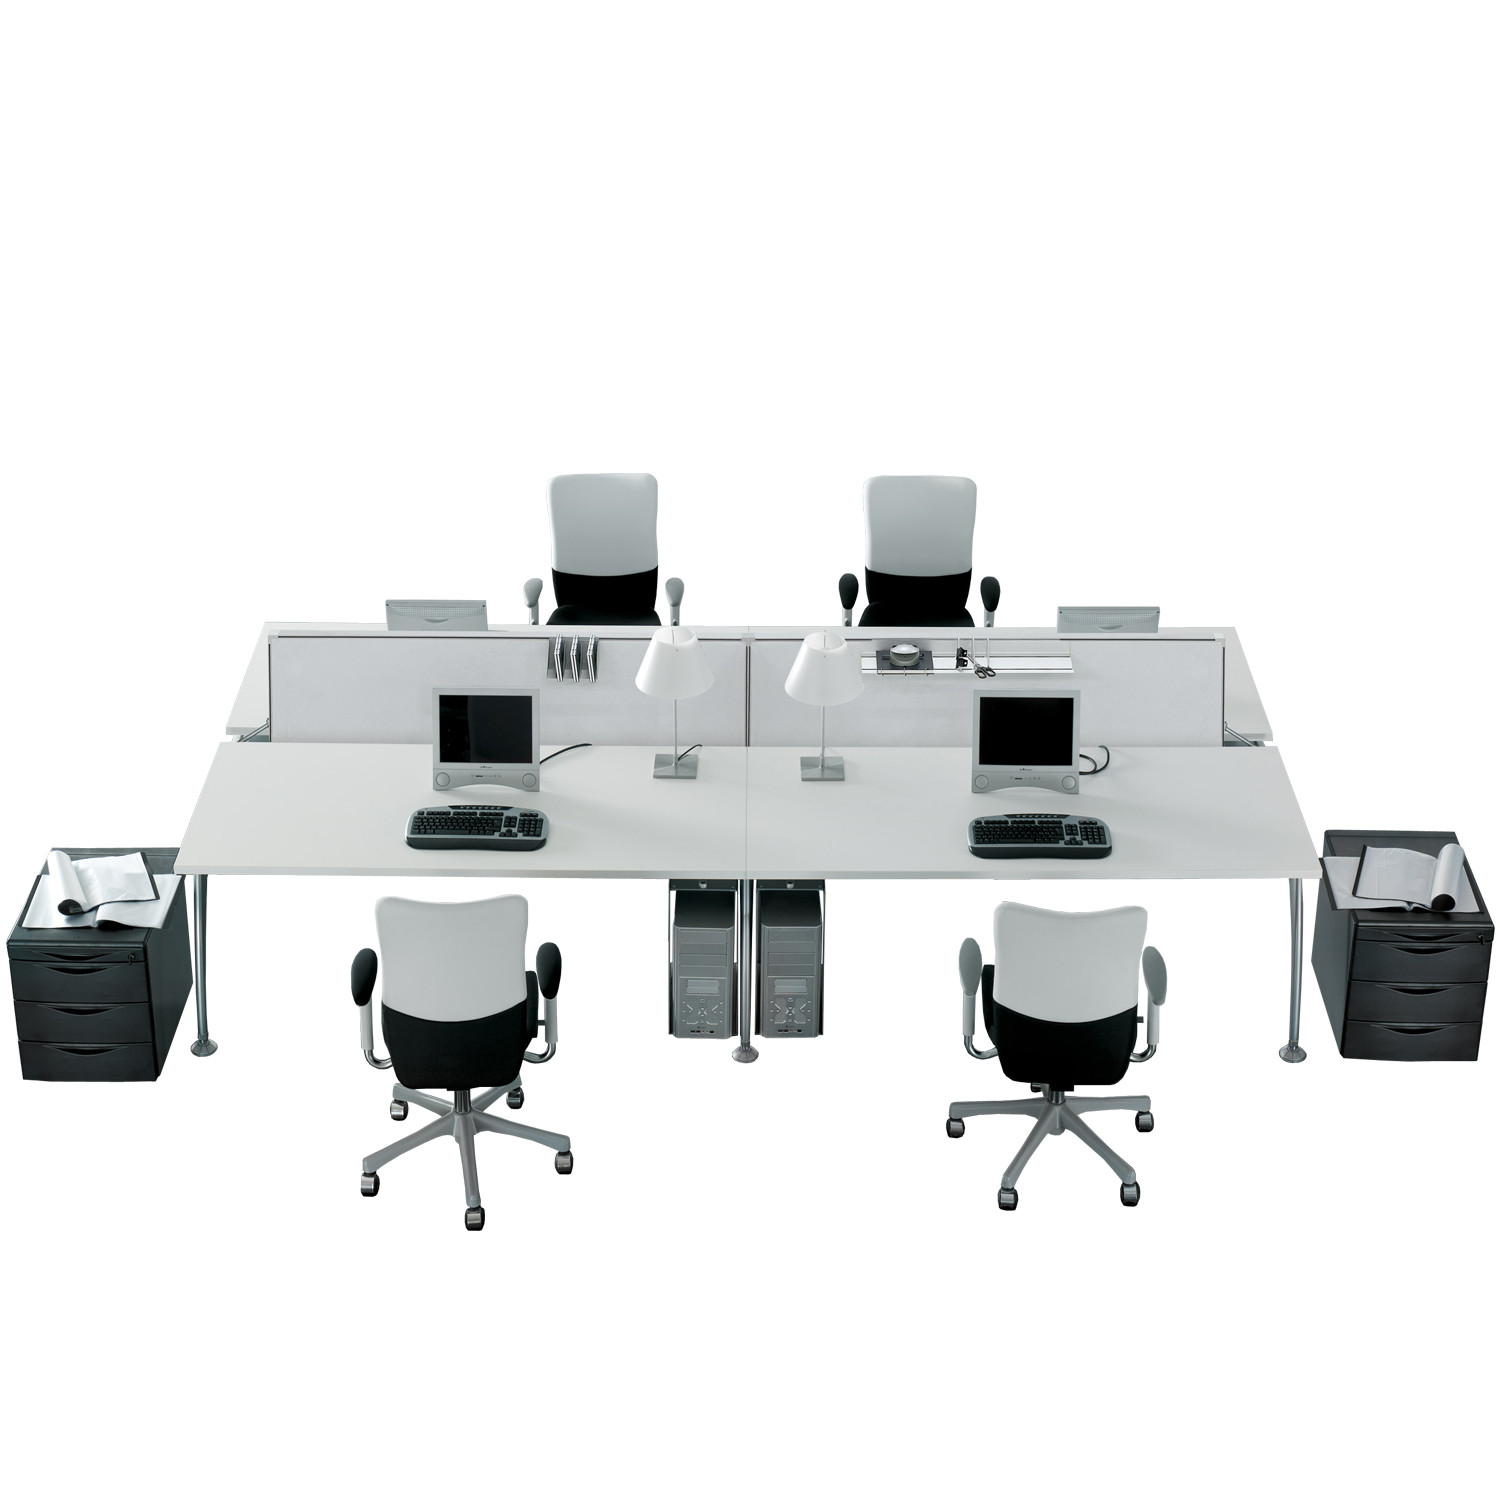 Tiper Desk Bench System by Frezza